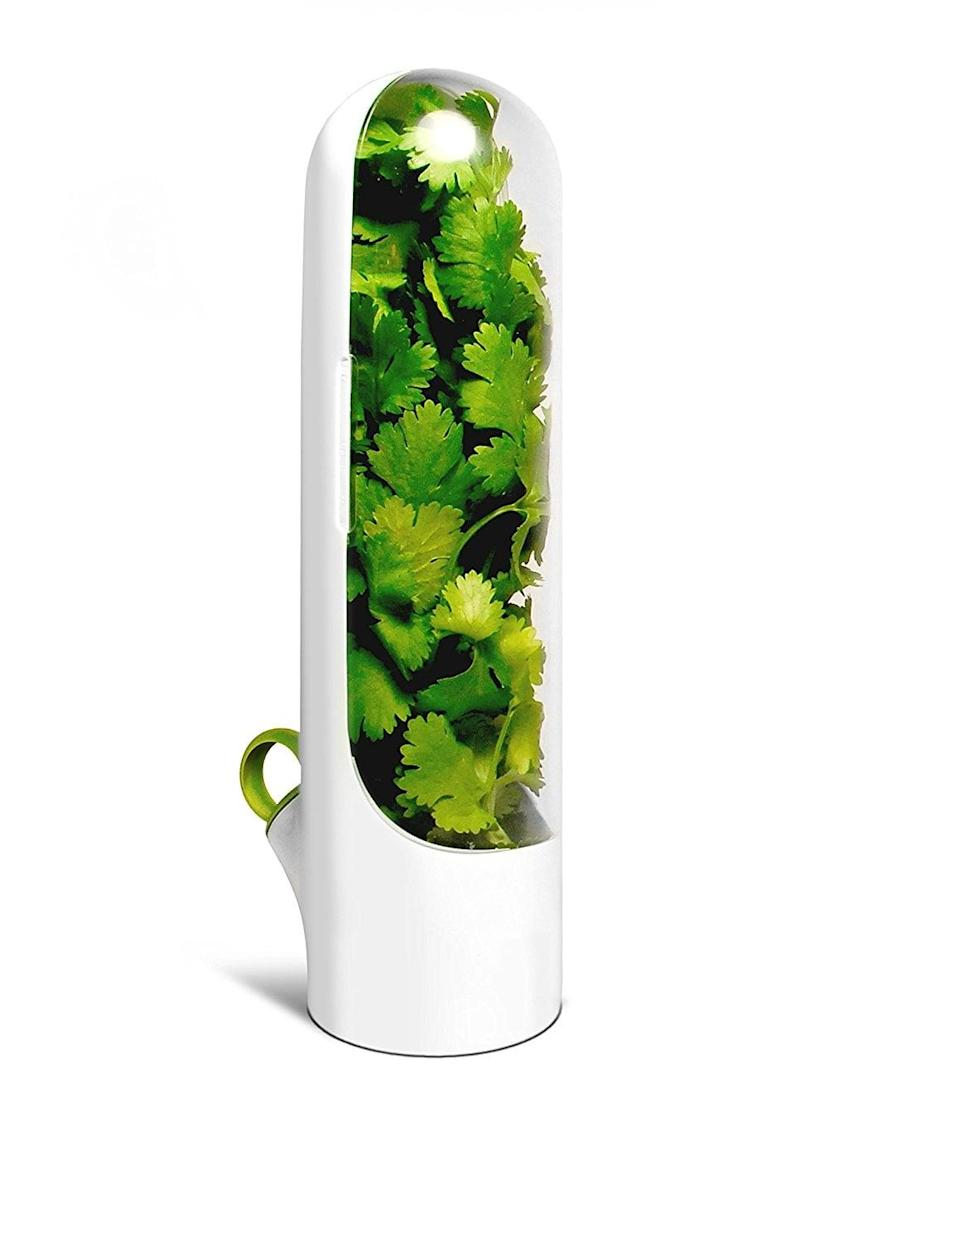 <p>Make sure your herbs stay as fresh as possible by storing them in this <span>Herb Saver Best Keeper</span> ($18). Simply refill it with water every three to five days and they will last longer.</p>